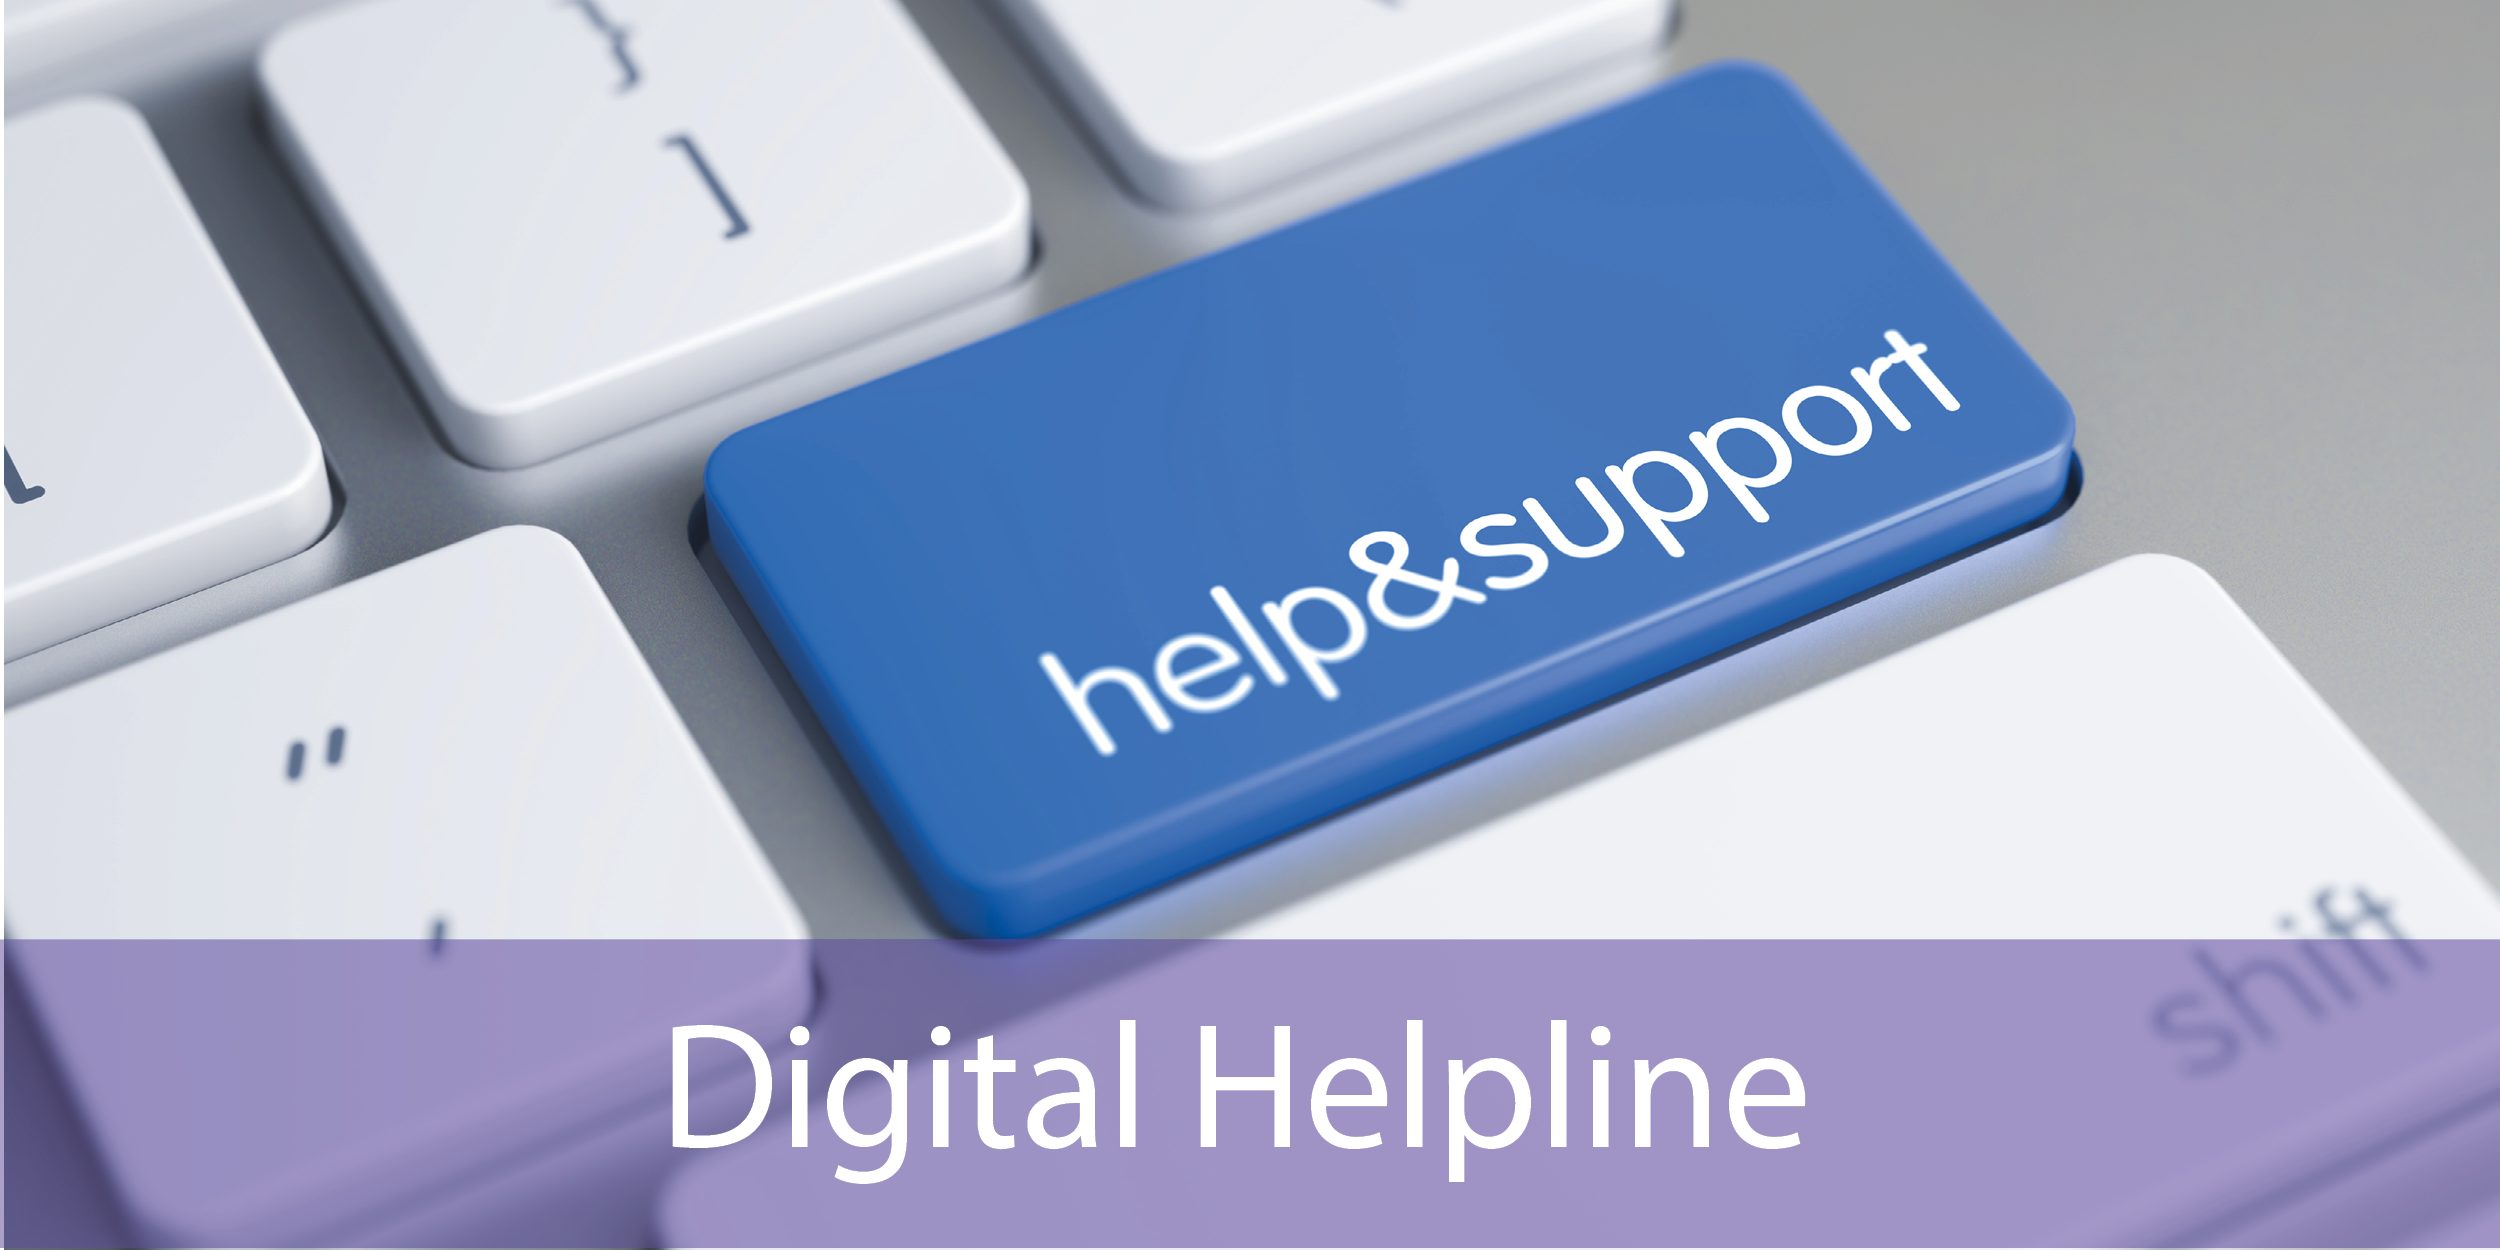 Digital Helpline